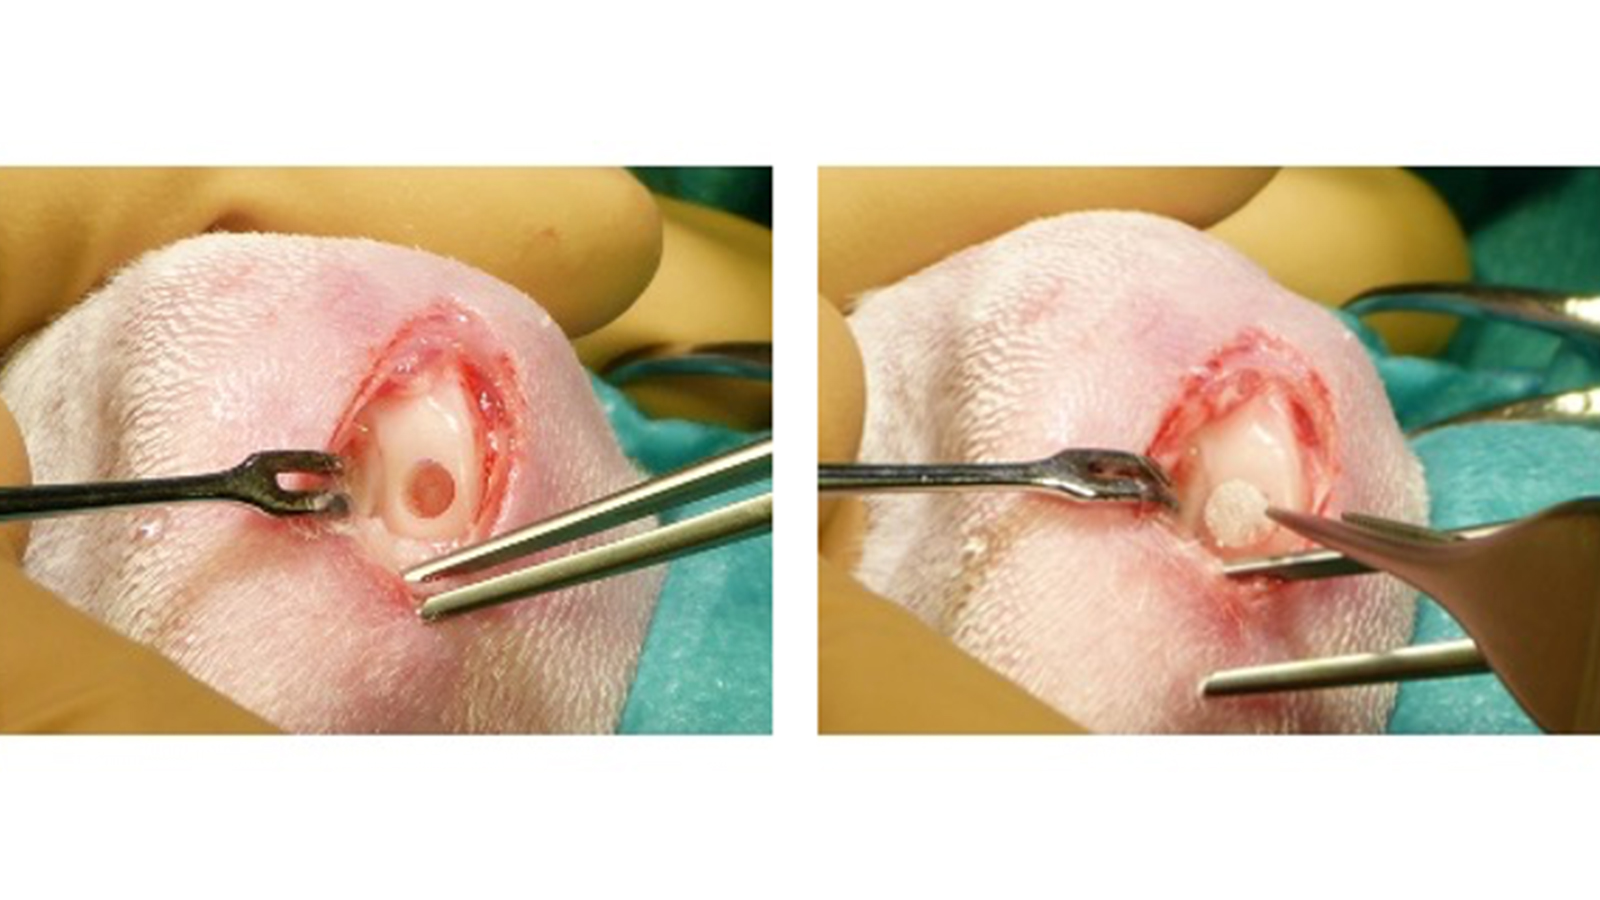 in vivo Assessment of Implantable Devices Intended to Repair or Regenerate Articular Cartilage